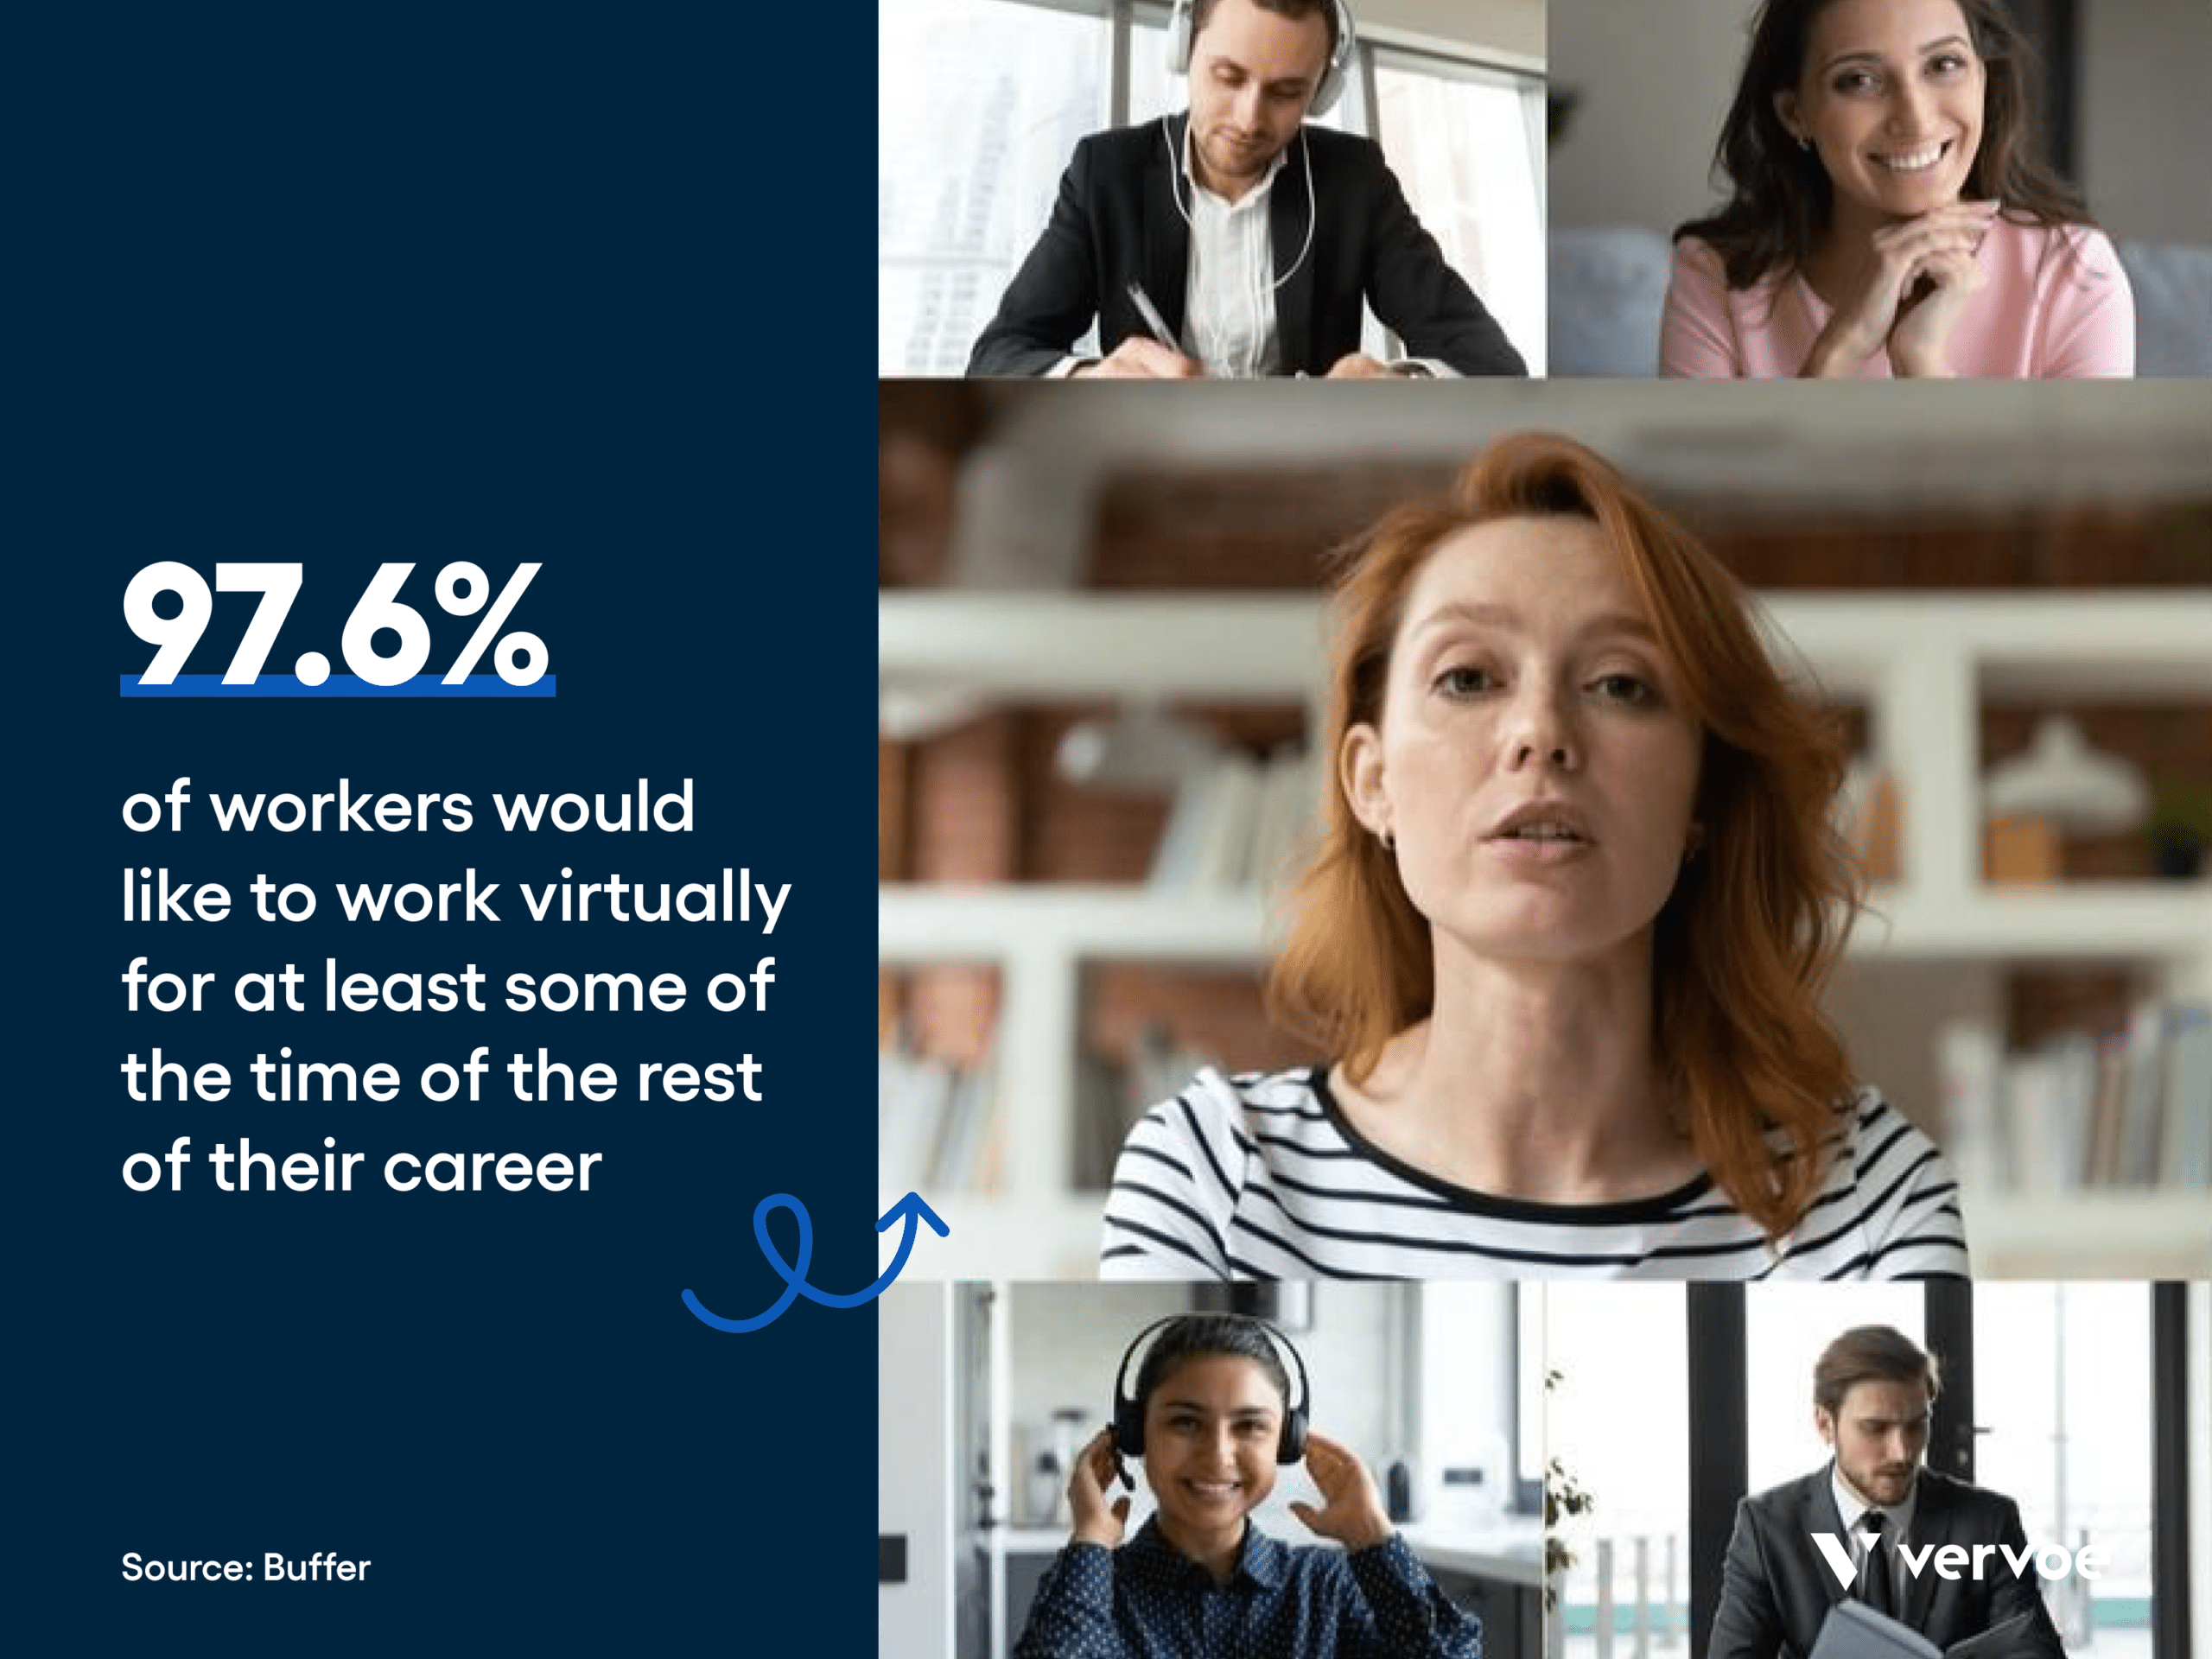 Benefits of a virtual recruit event: 97. 6% of workers report they would be happier working remotely